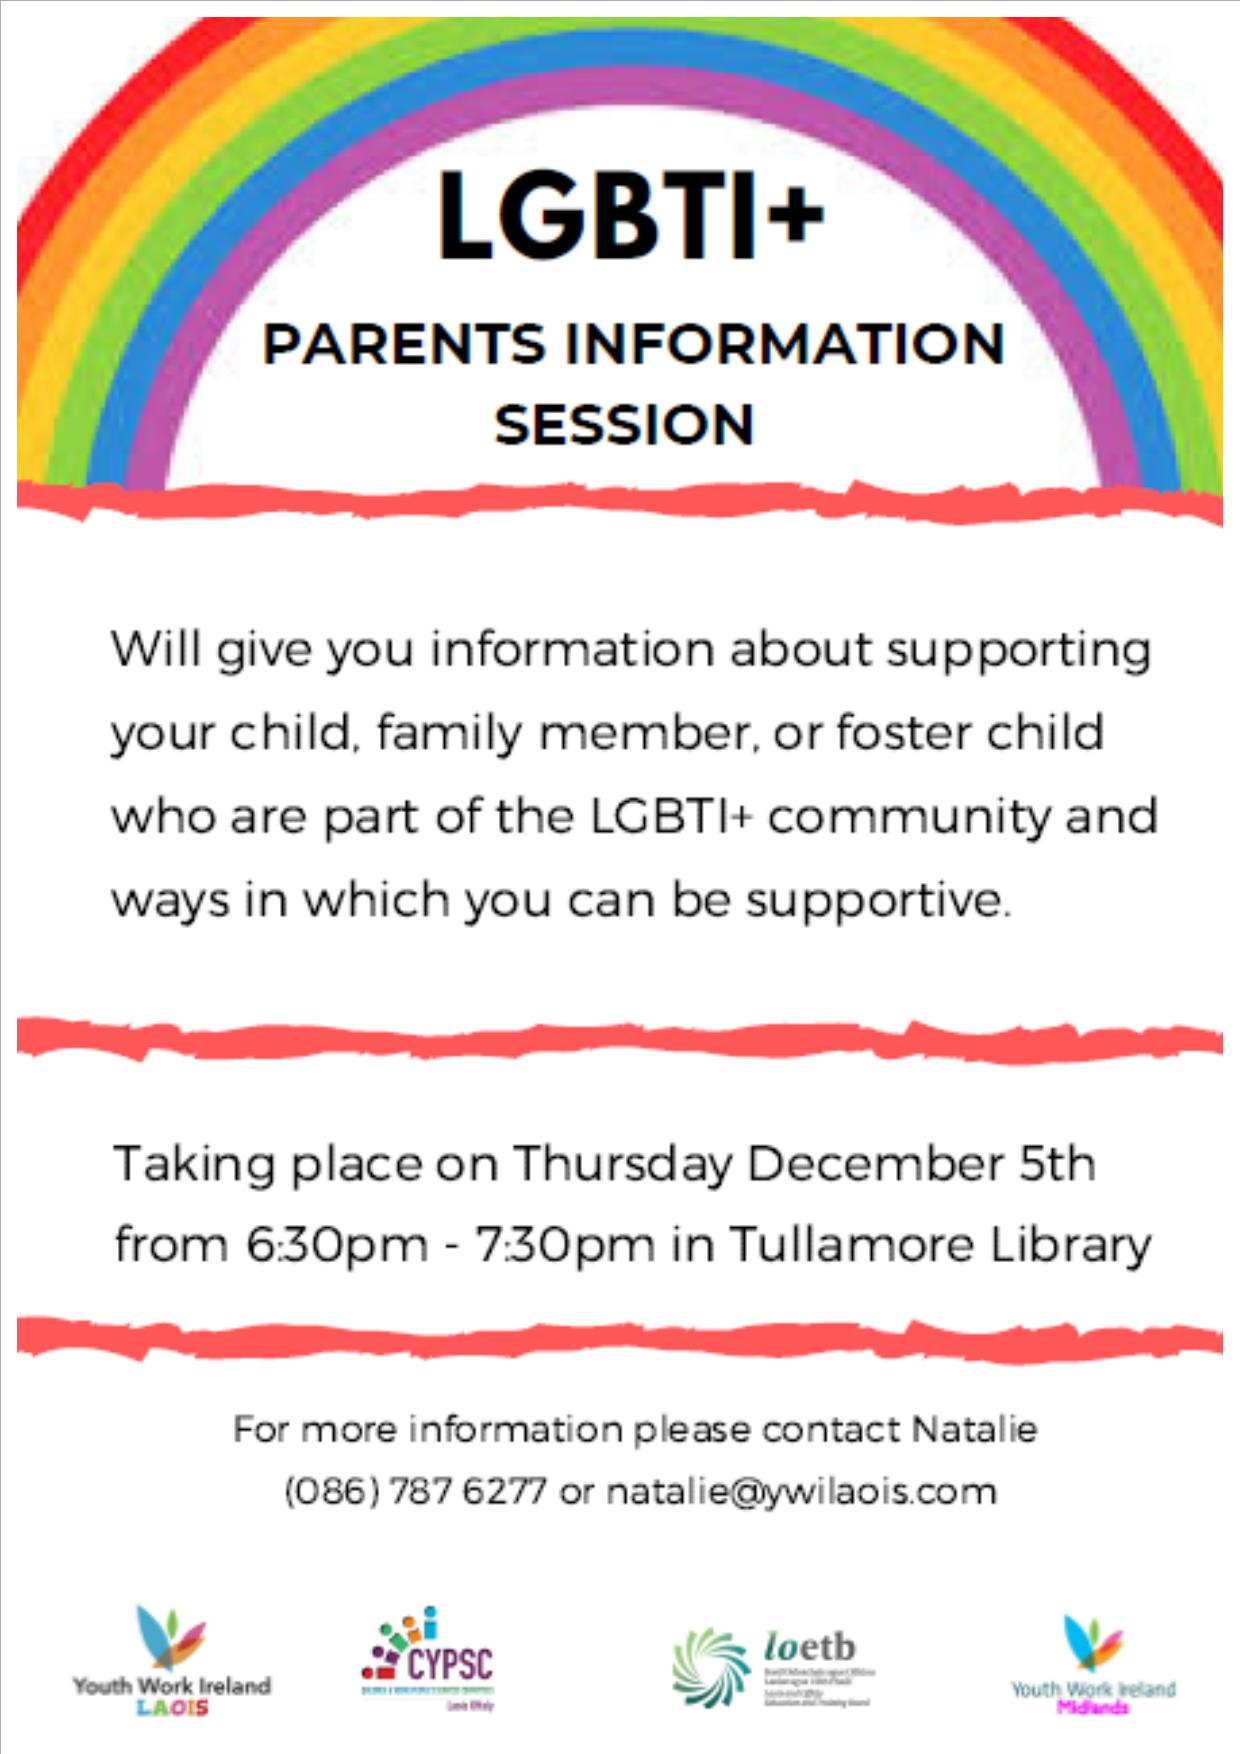 LGBTI Parents information session